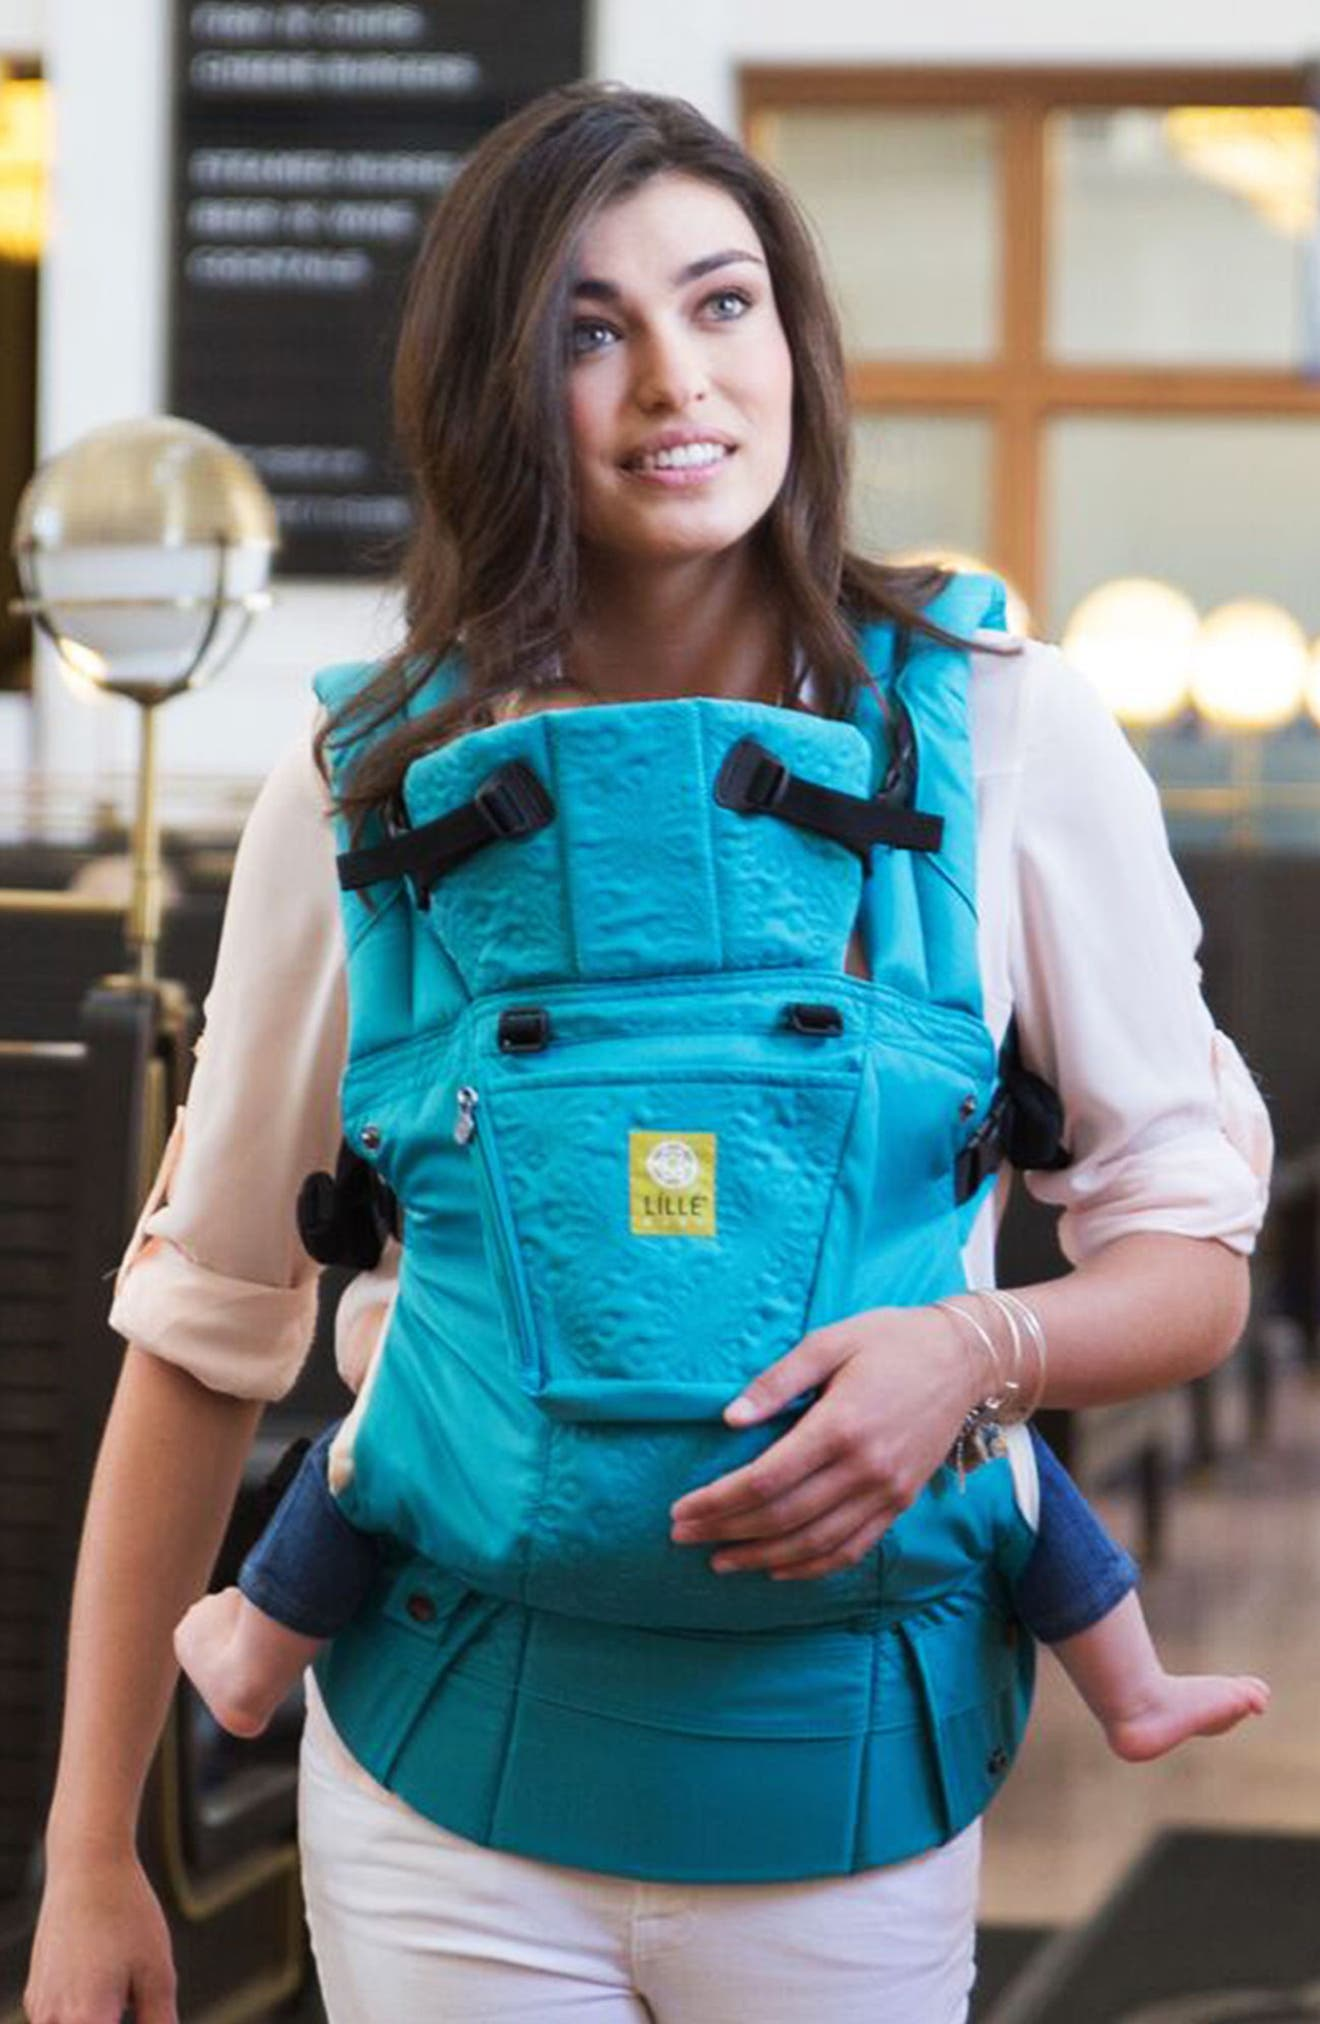 Infant Lilliebaby Complete Embossed Baby Carrier Size One Size  Bluegreen